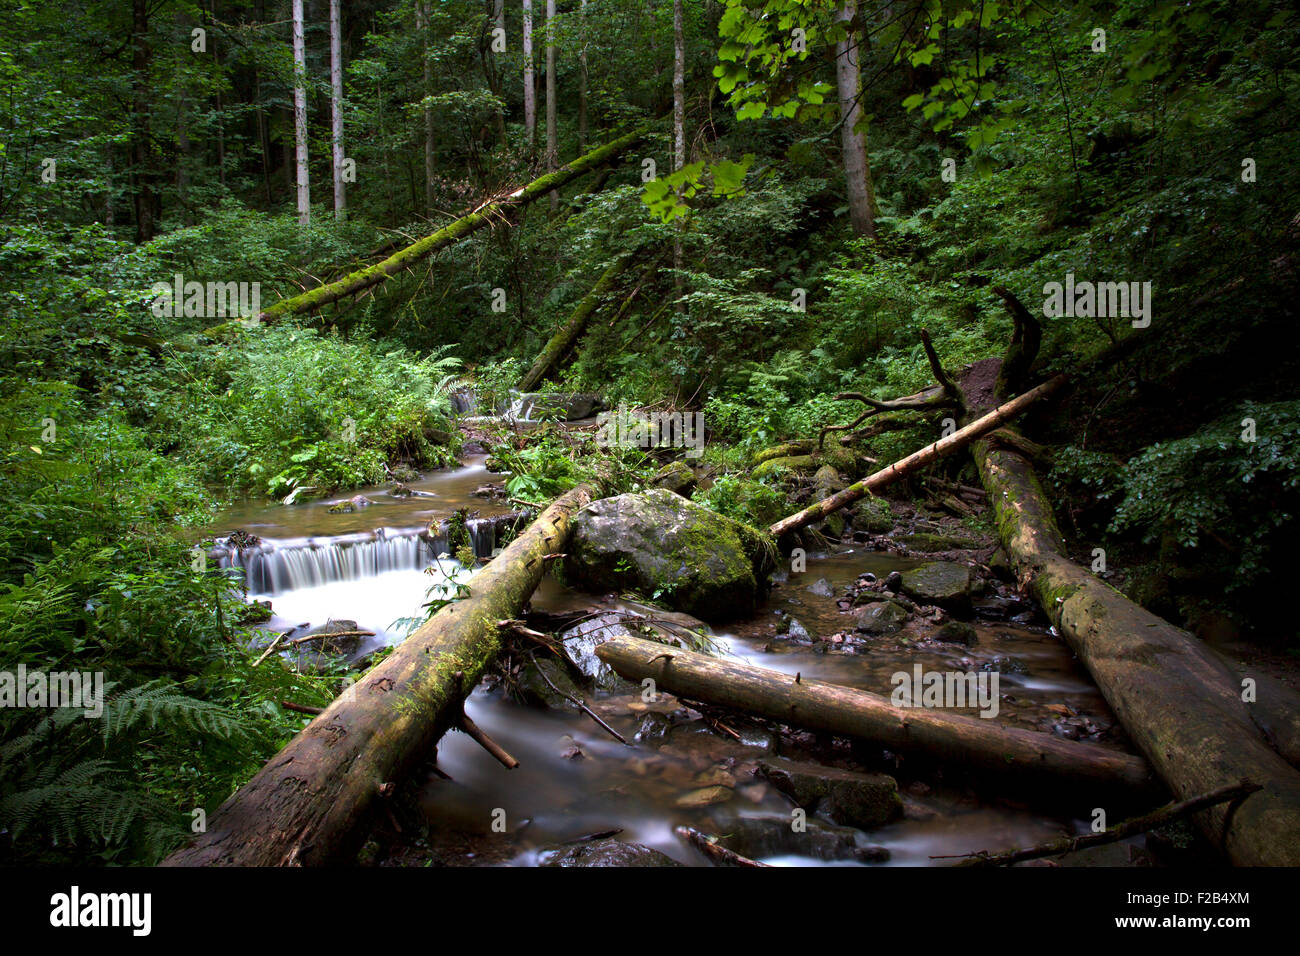 waterfalls in the black forest Germany. Long exposure - Stock Image